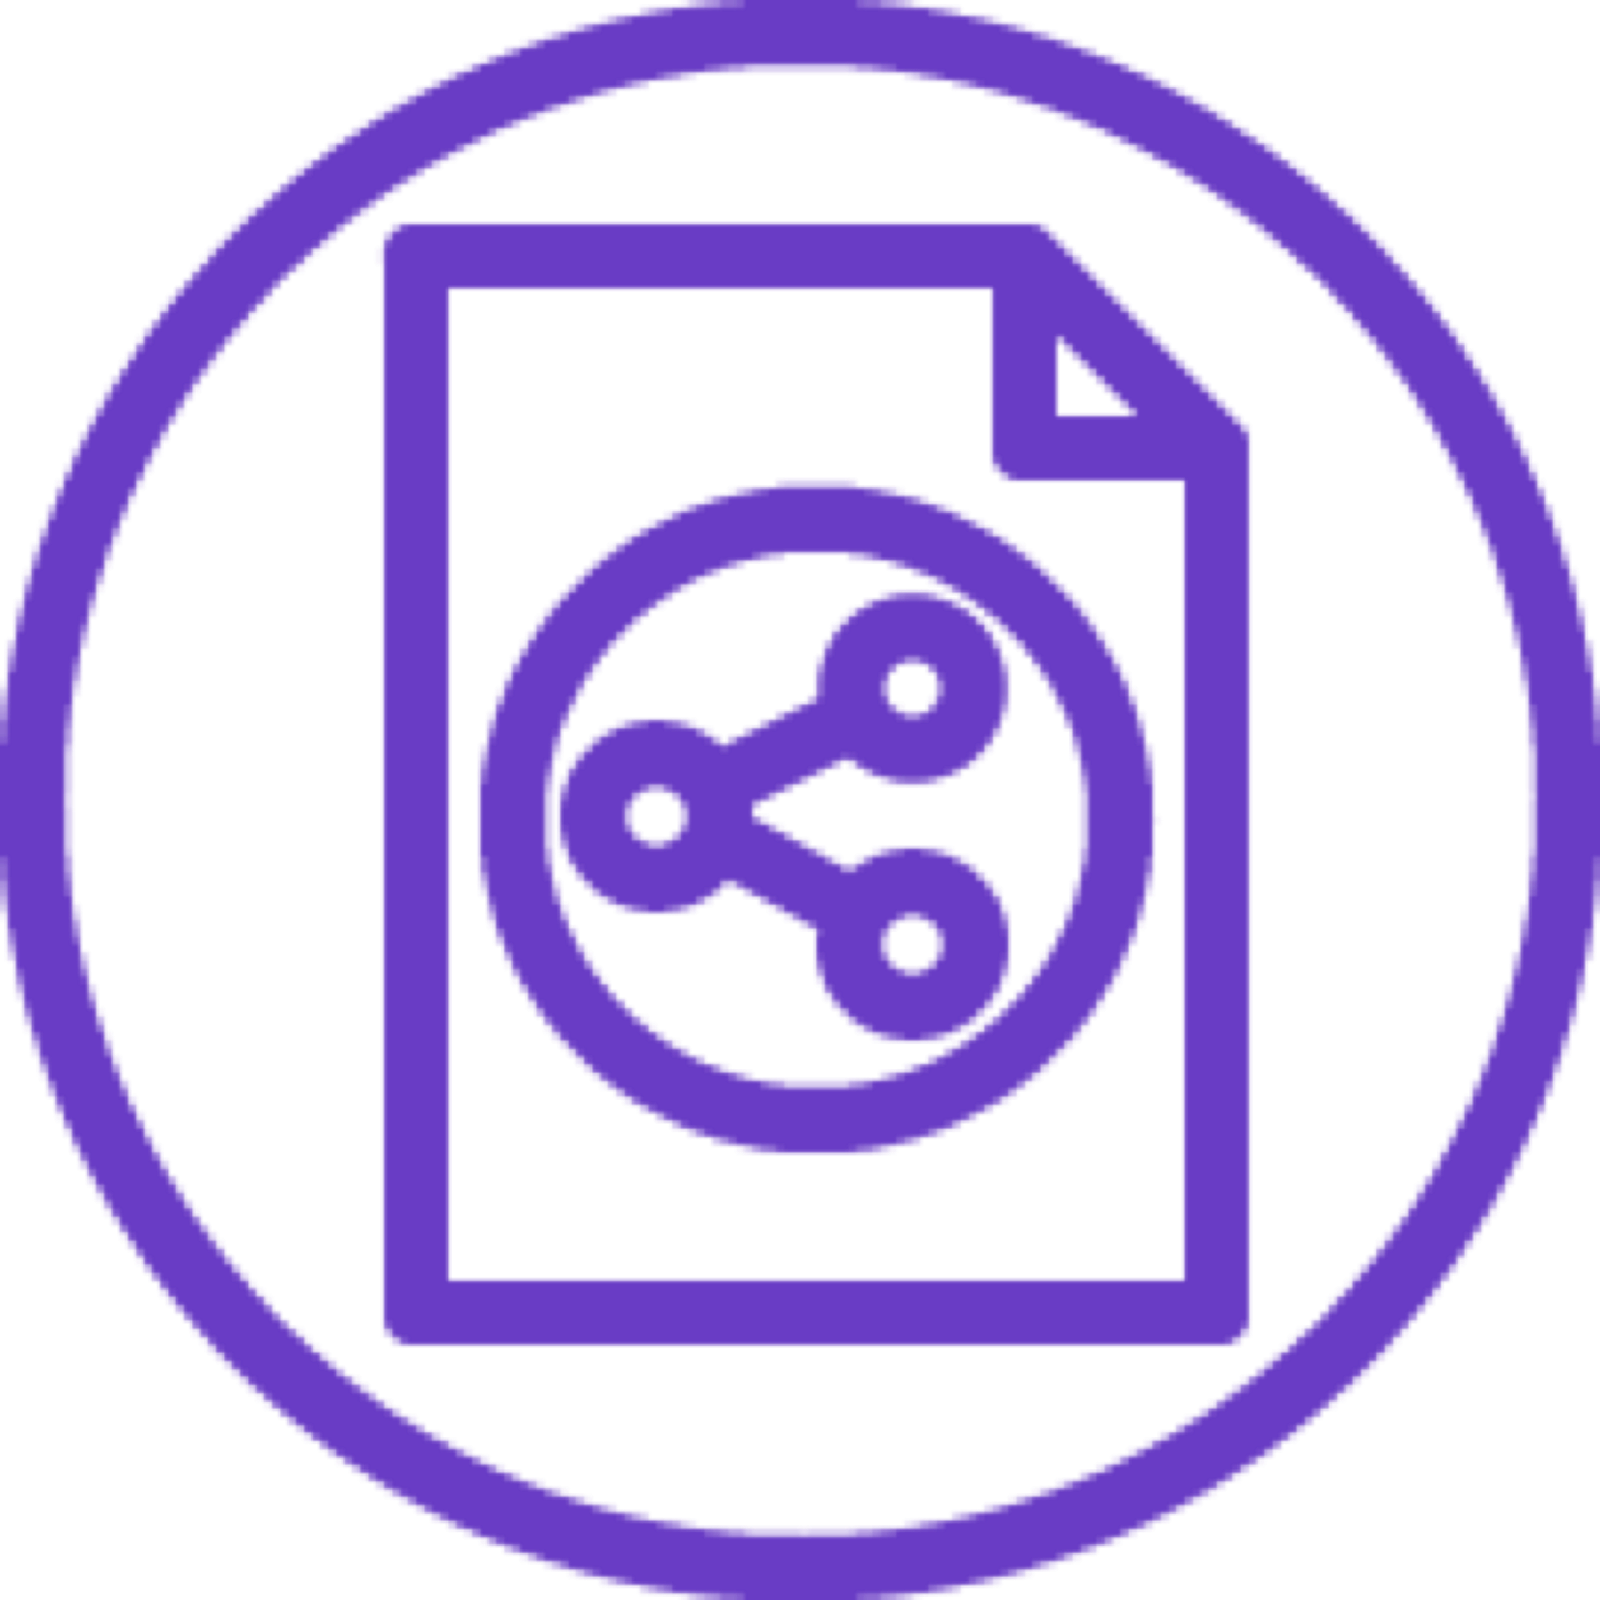 Classic Load Balancer icon depicting a document with three connected circles inside a larger circle